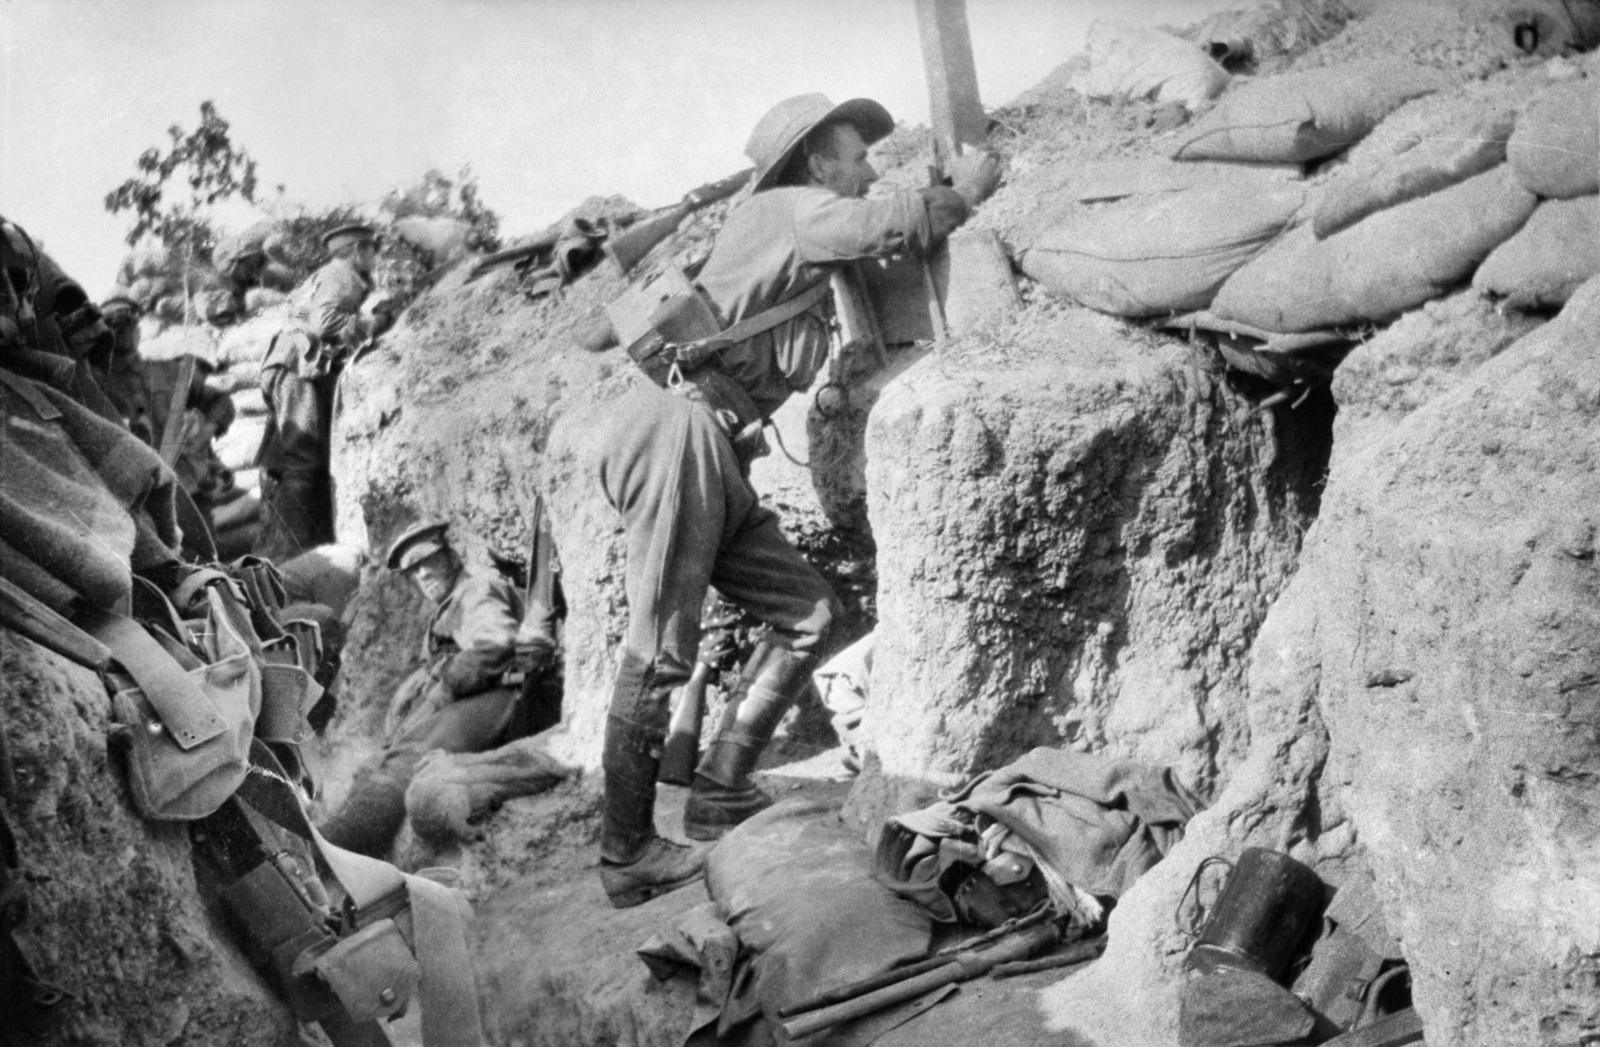 battle gallipoli essays Battle of gallipoli and its effects to world war i name professor's name course date the gallipoli battle of 1915 was one of the most send me essays.